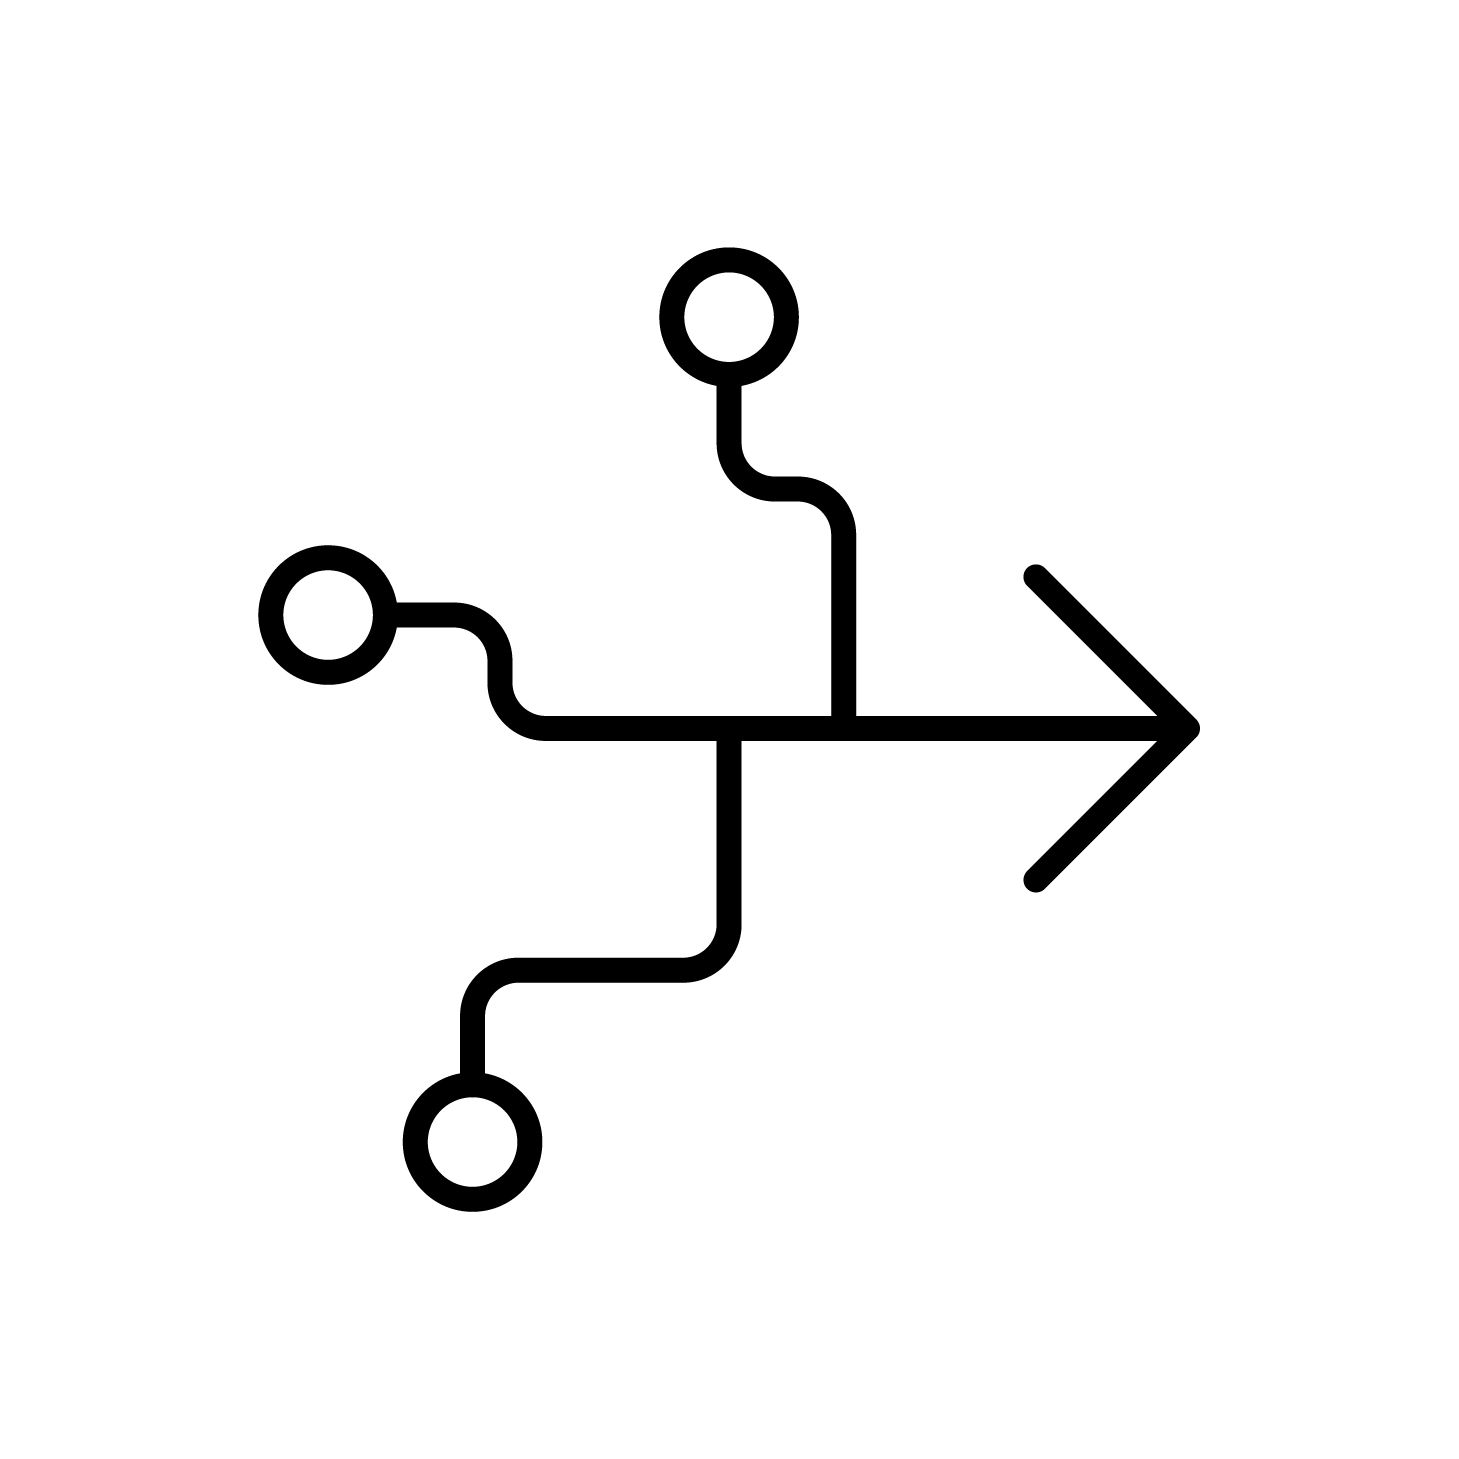 Icon-Tertiary-Connect-Black